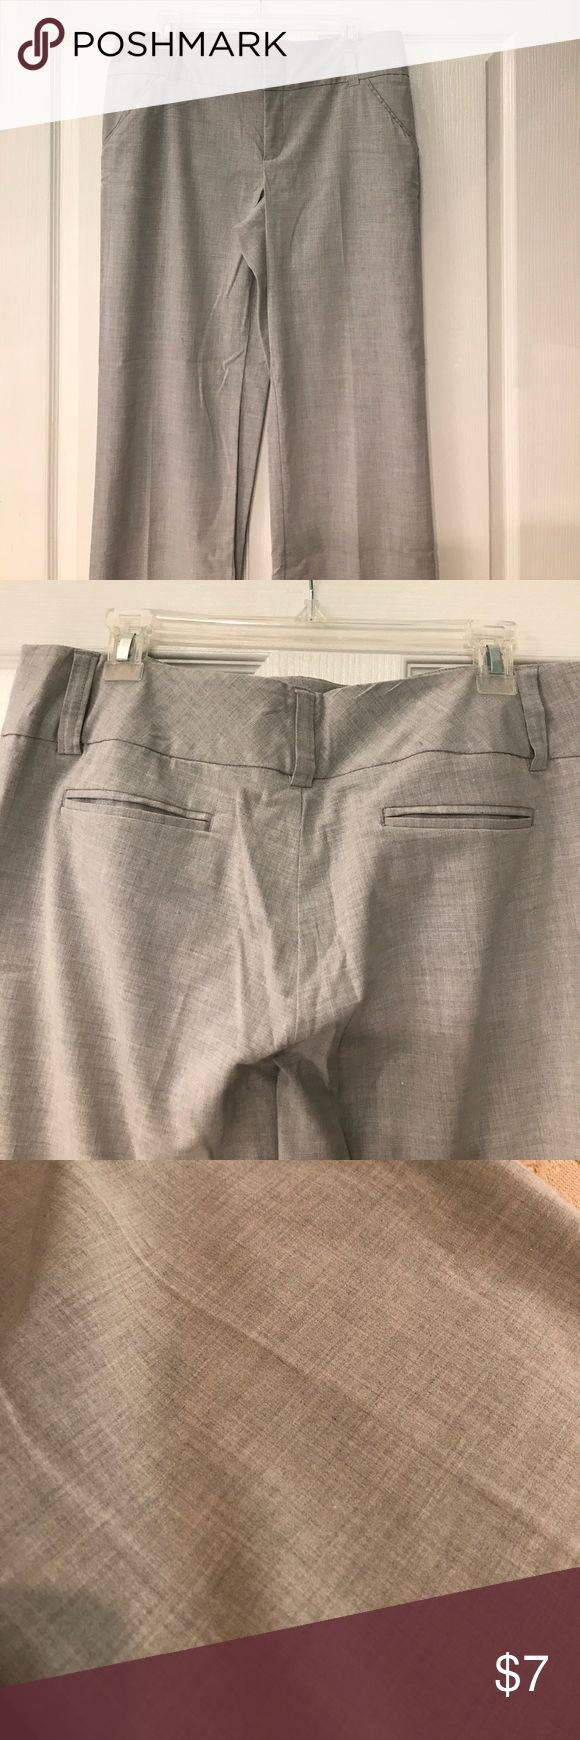 Daisy Fuentes beautiful gray trousers Excellent used condition. Size 12. Daisy Fuentes Pants Trousers